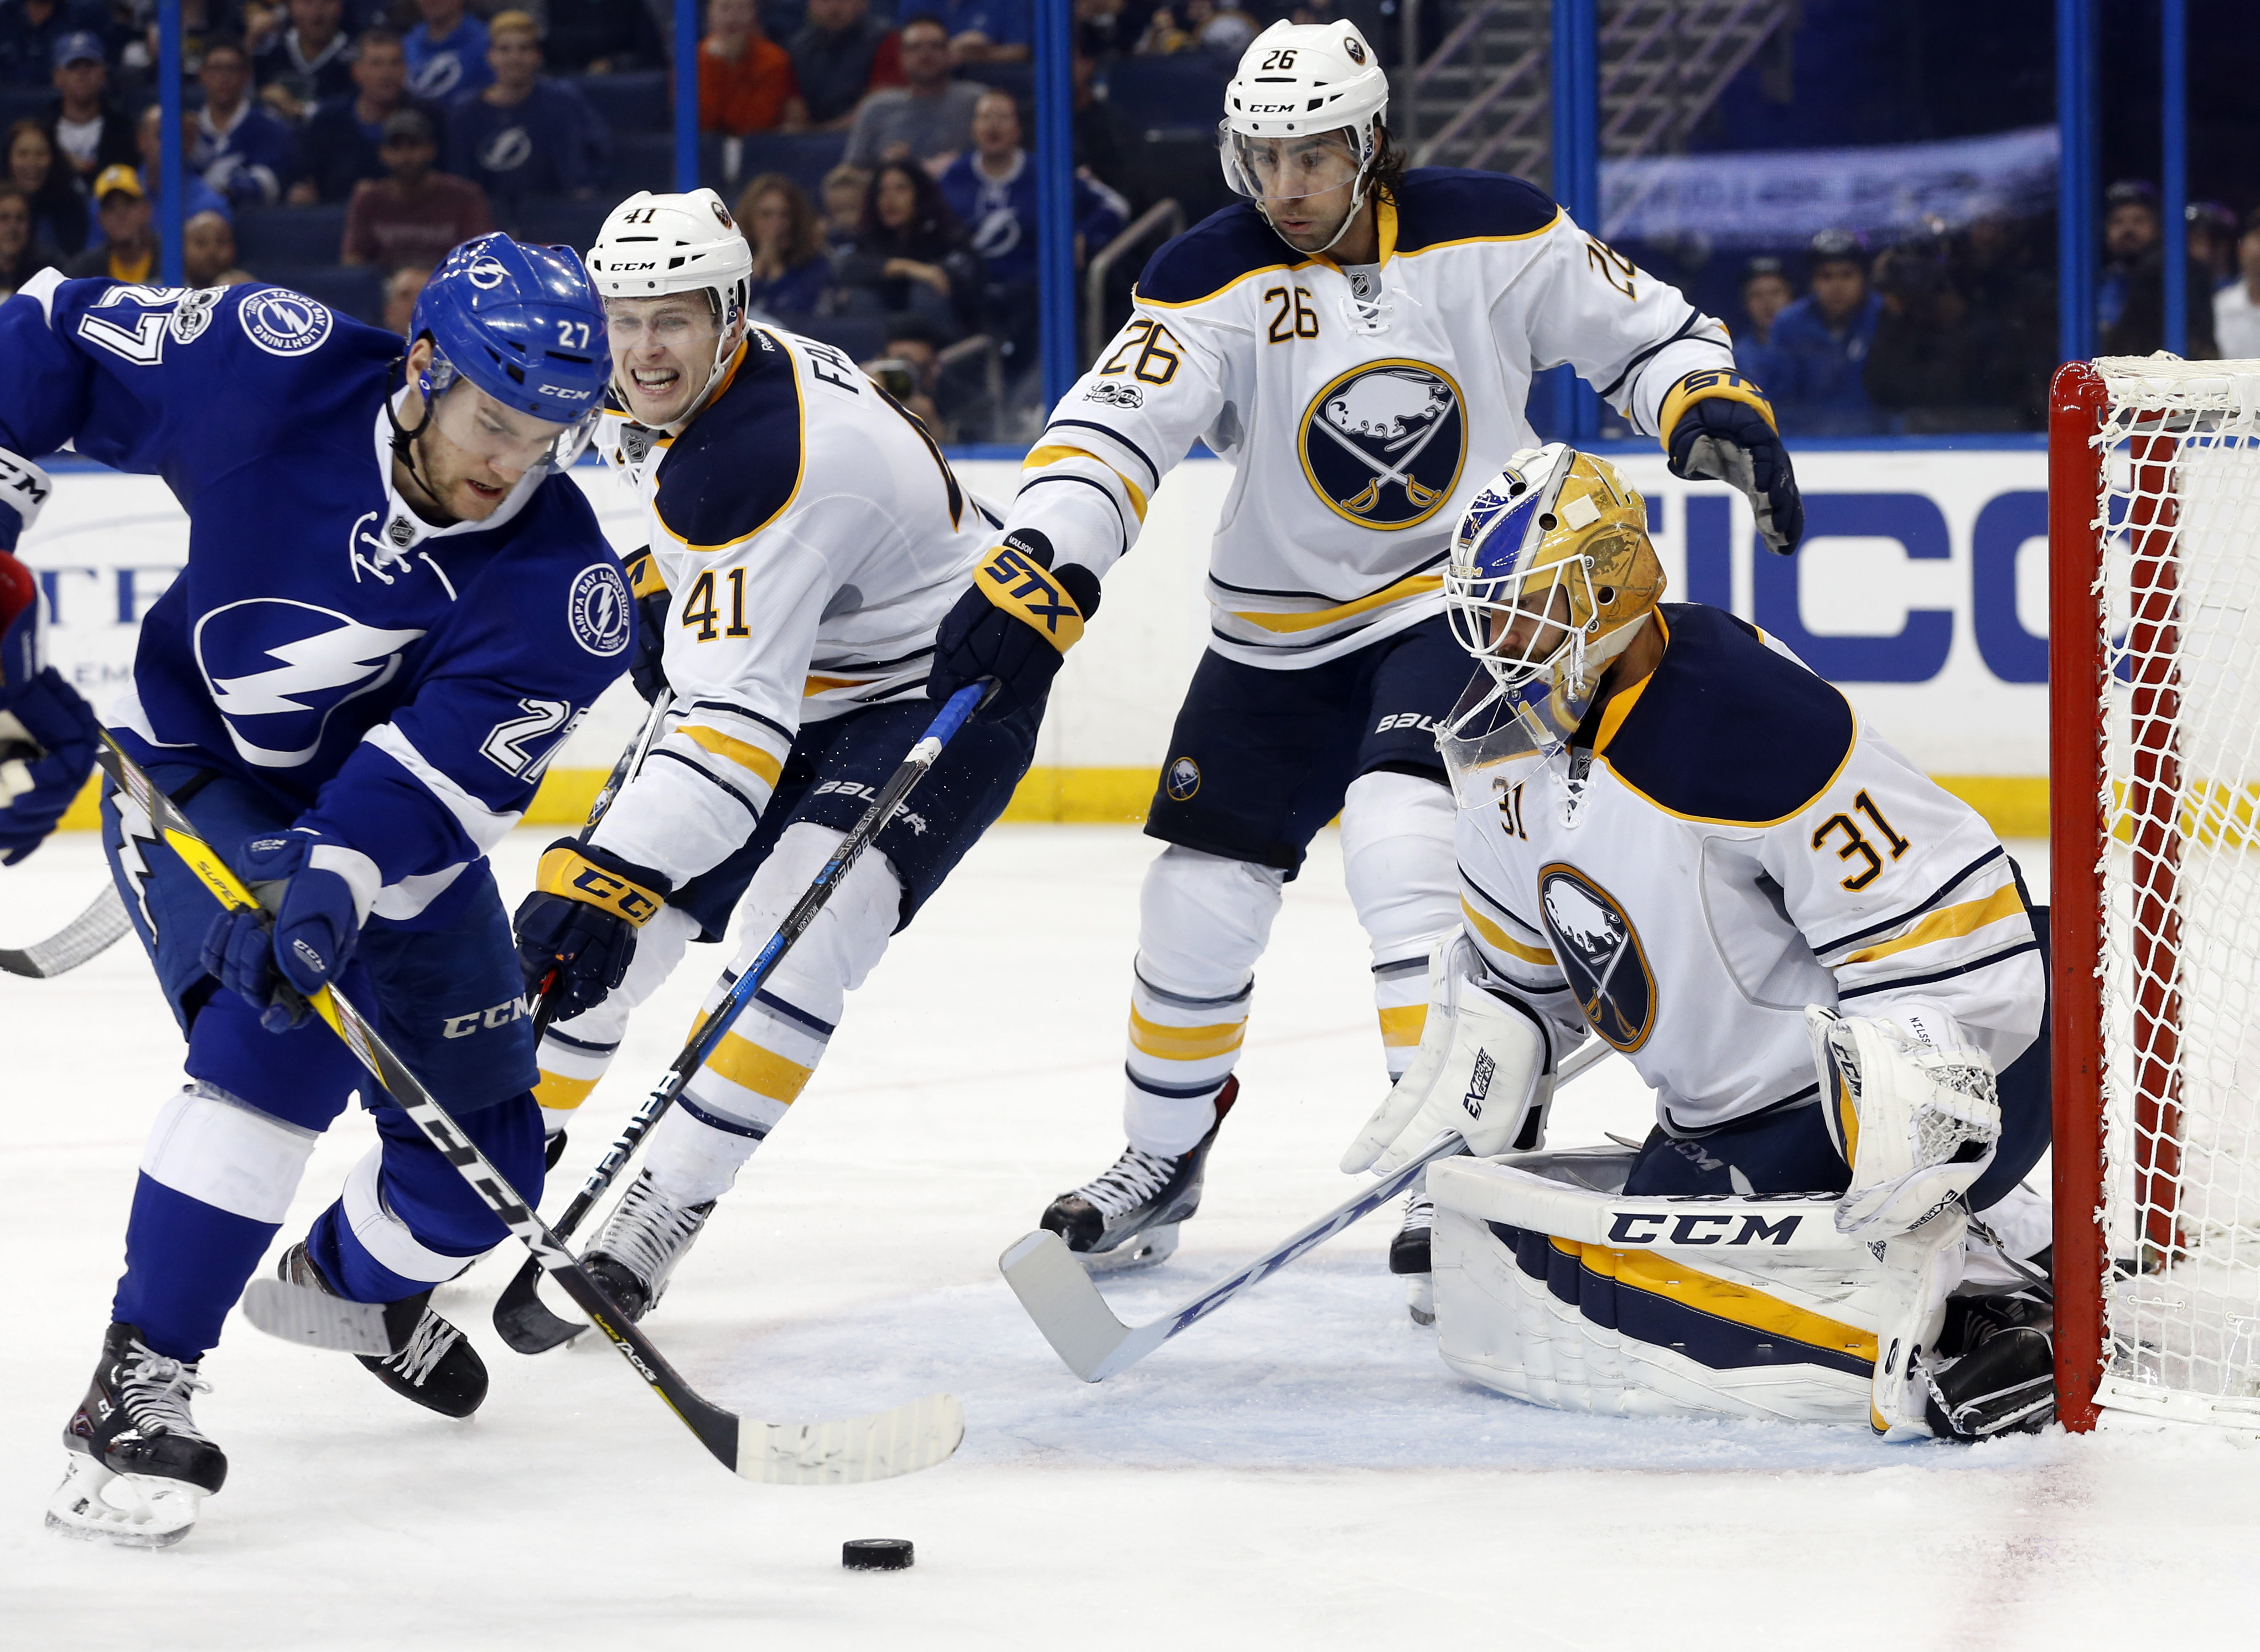 Tampa Bay's Jonathan Drouin works against Sabres goalie Anders Nilsson (Kim Klement-USA TODAY Sports)